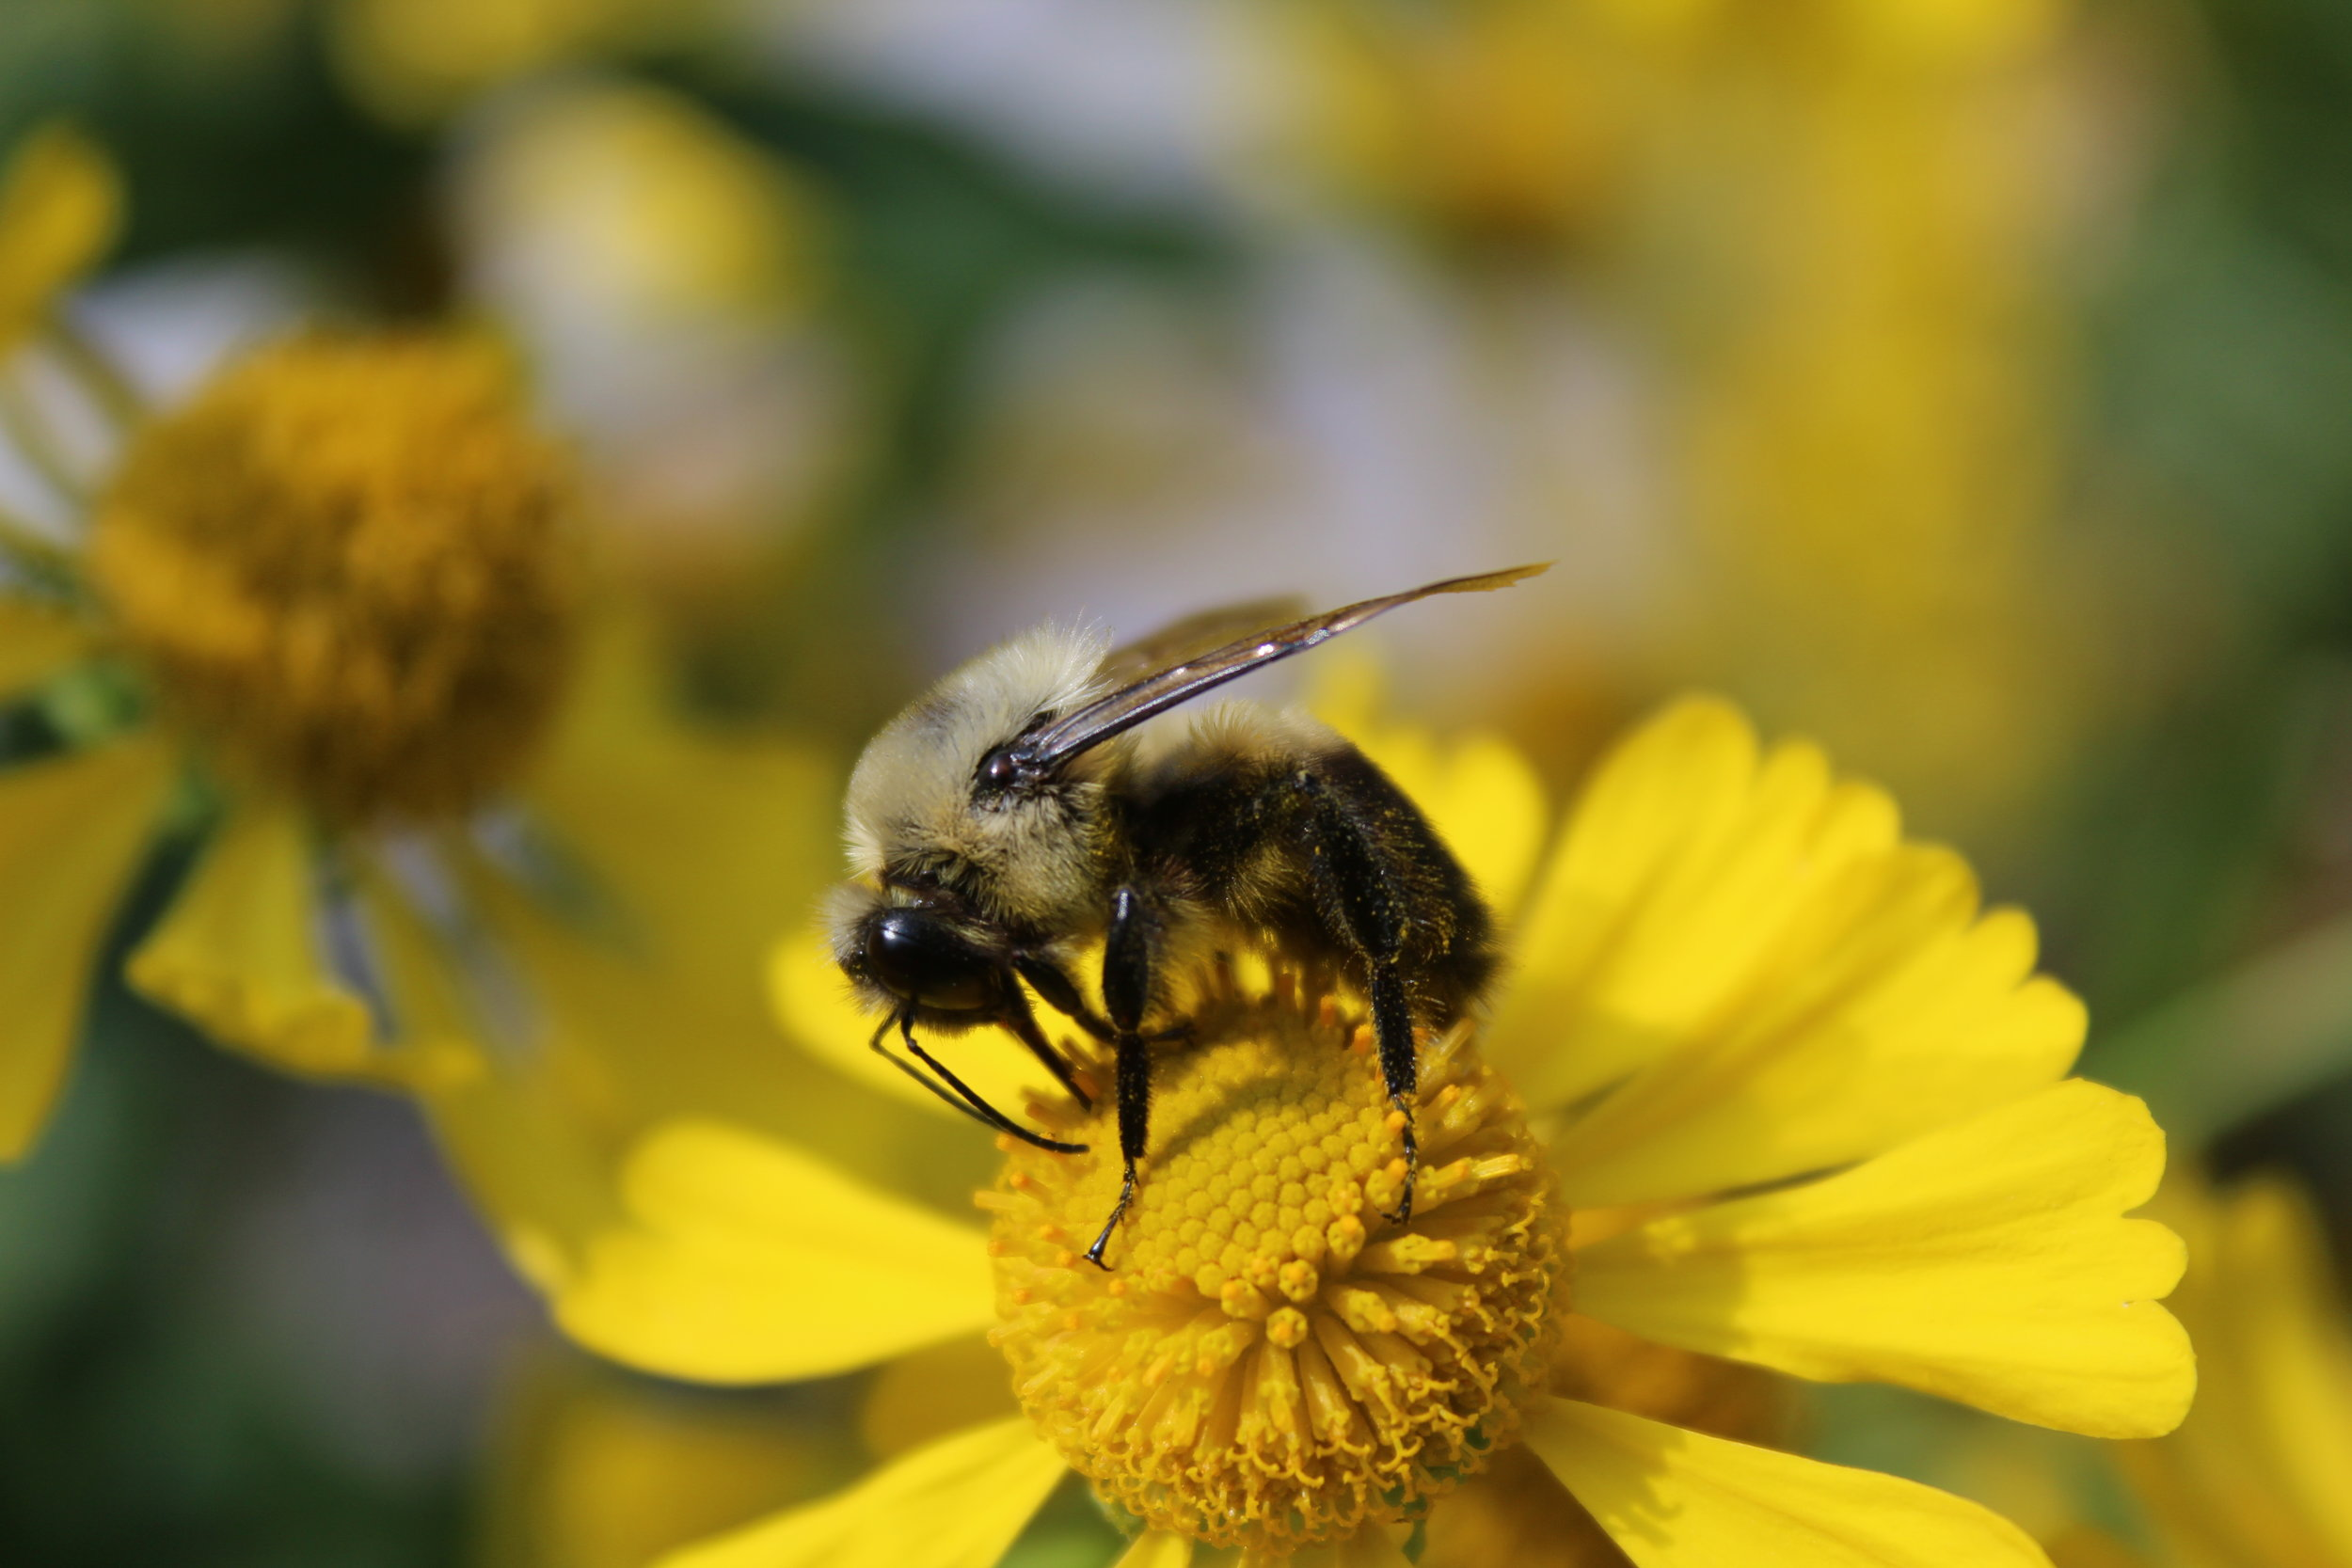 Our commitment to the Pollinators - Evergreen partnered with BeeKind MN this year to help raise awareness, build hives, and educate the Twin Cities community on the impact our local pollinators have our our wild vegetation and crops